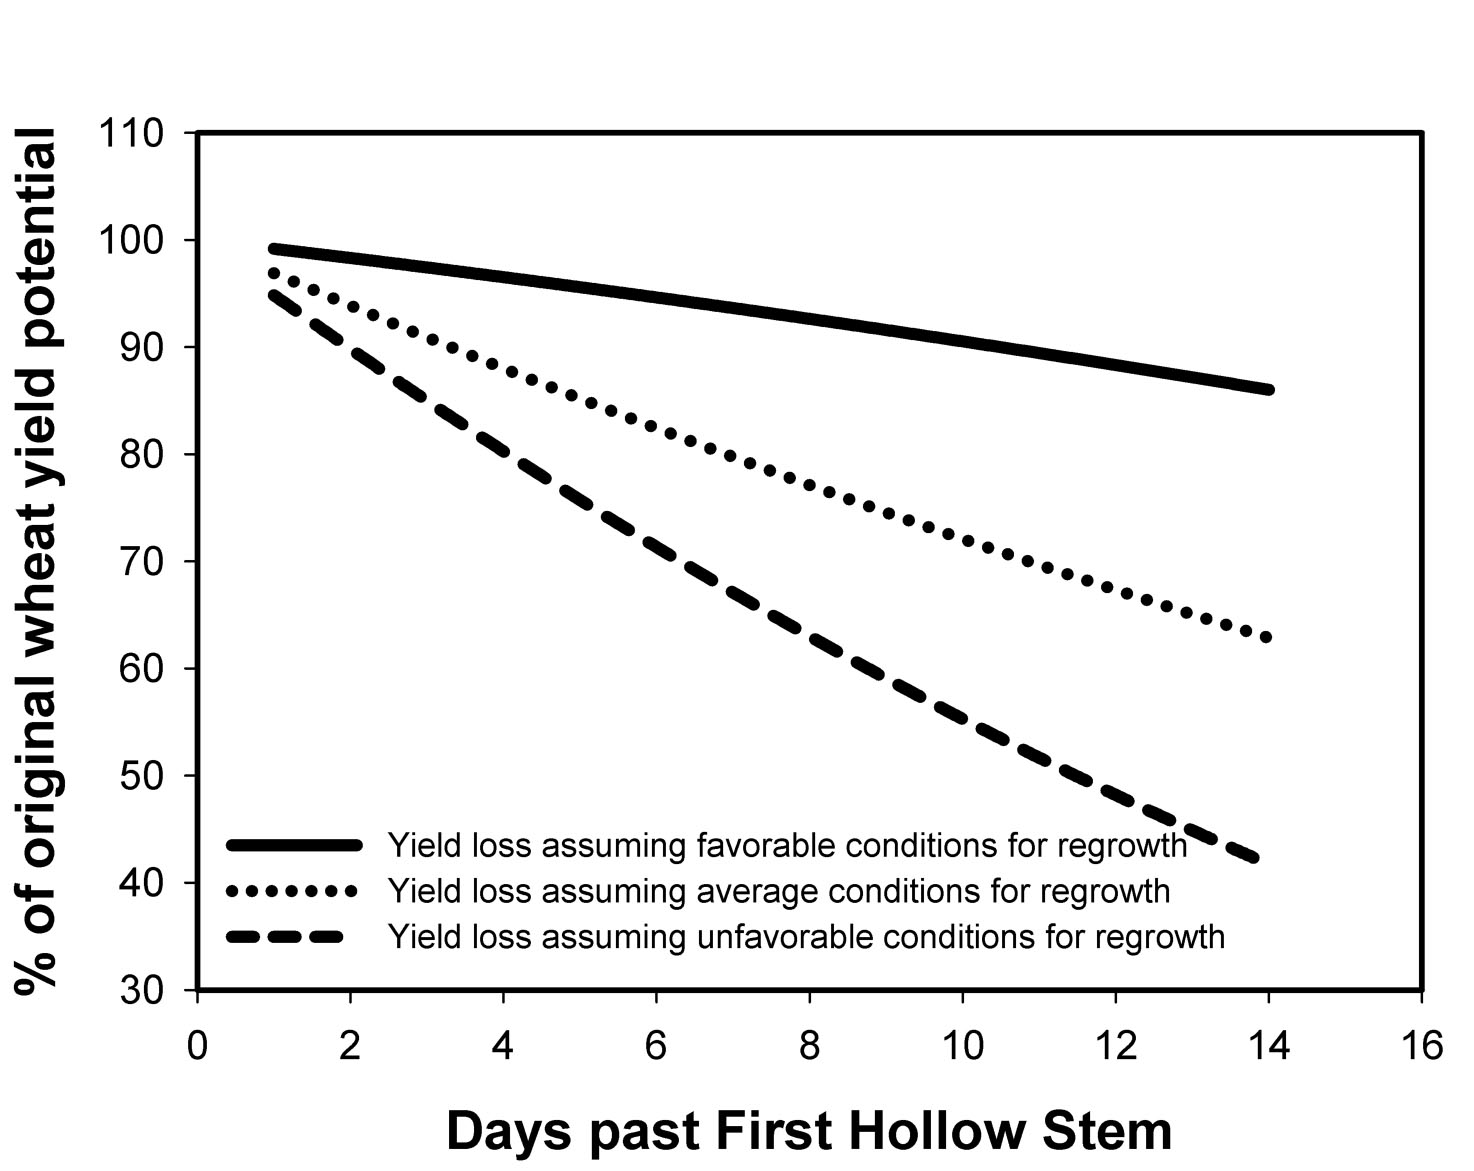 Chart containing % of original wheat yield potential and days past first hollow stem data.